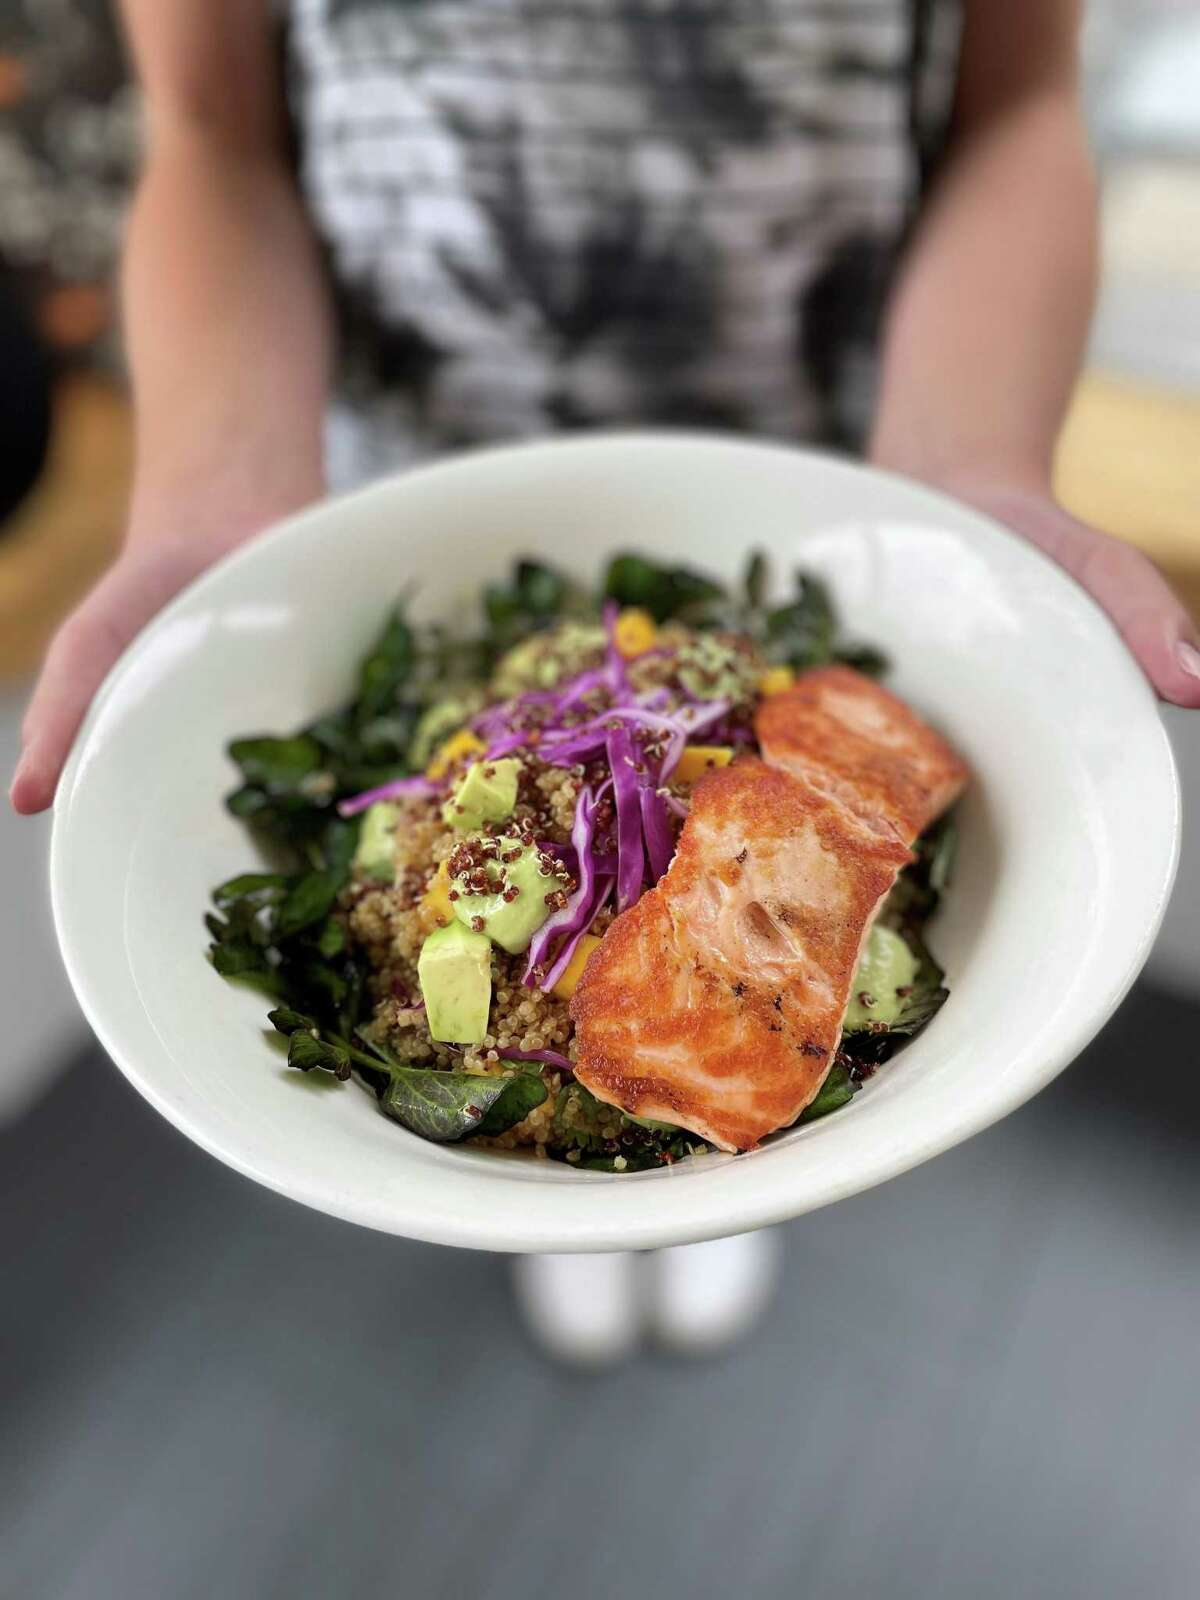 Brian Candee, a Redding resident, opened a restaurant in Bedford Hills, New York but is looking to bring takeout to his local neighbors.